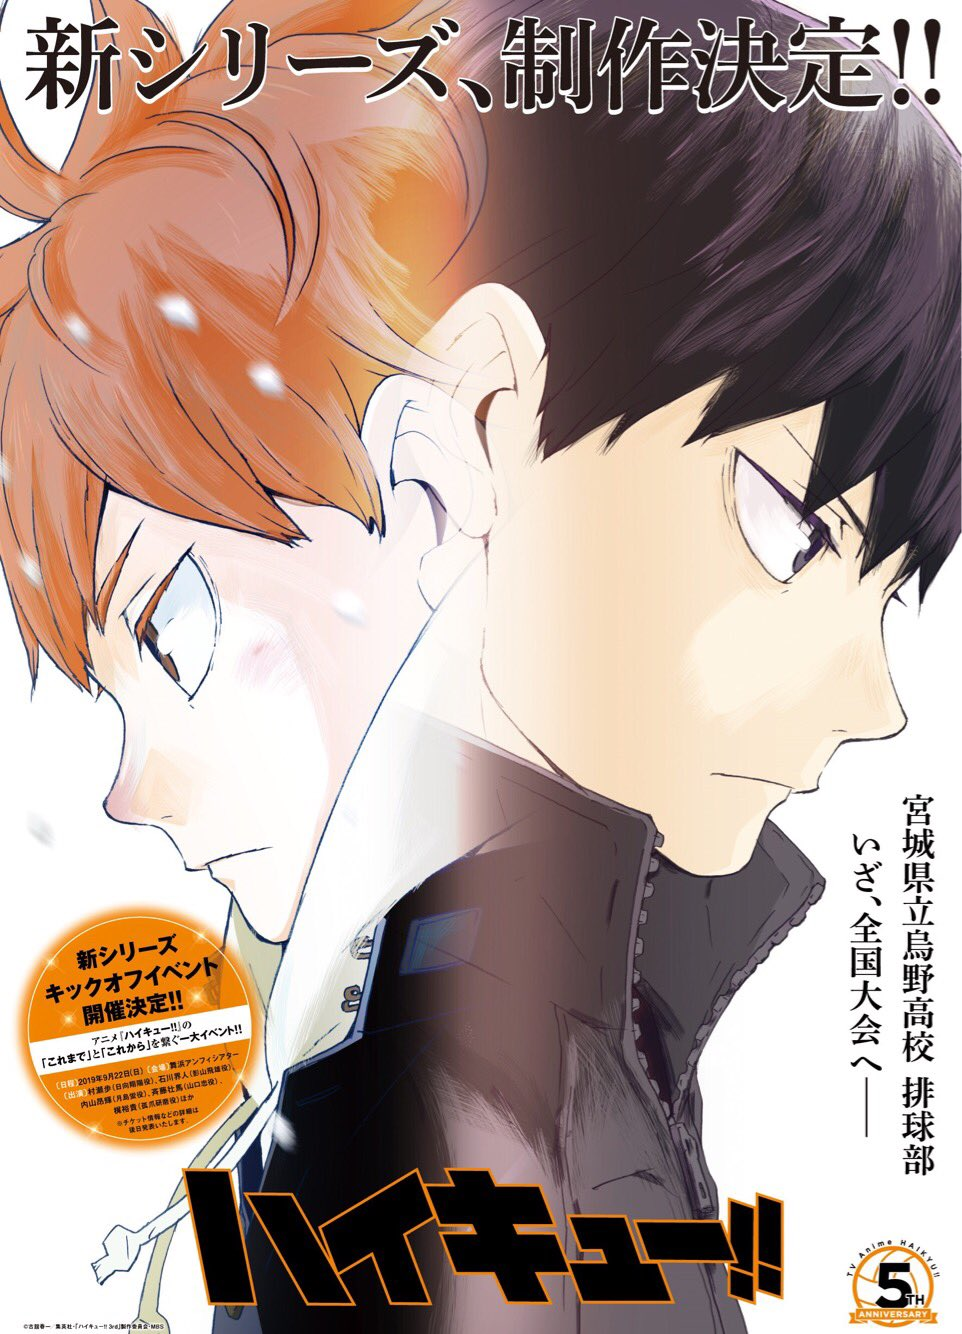 Haikyuu season 4 visual